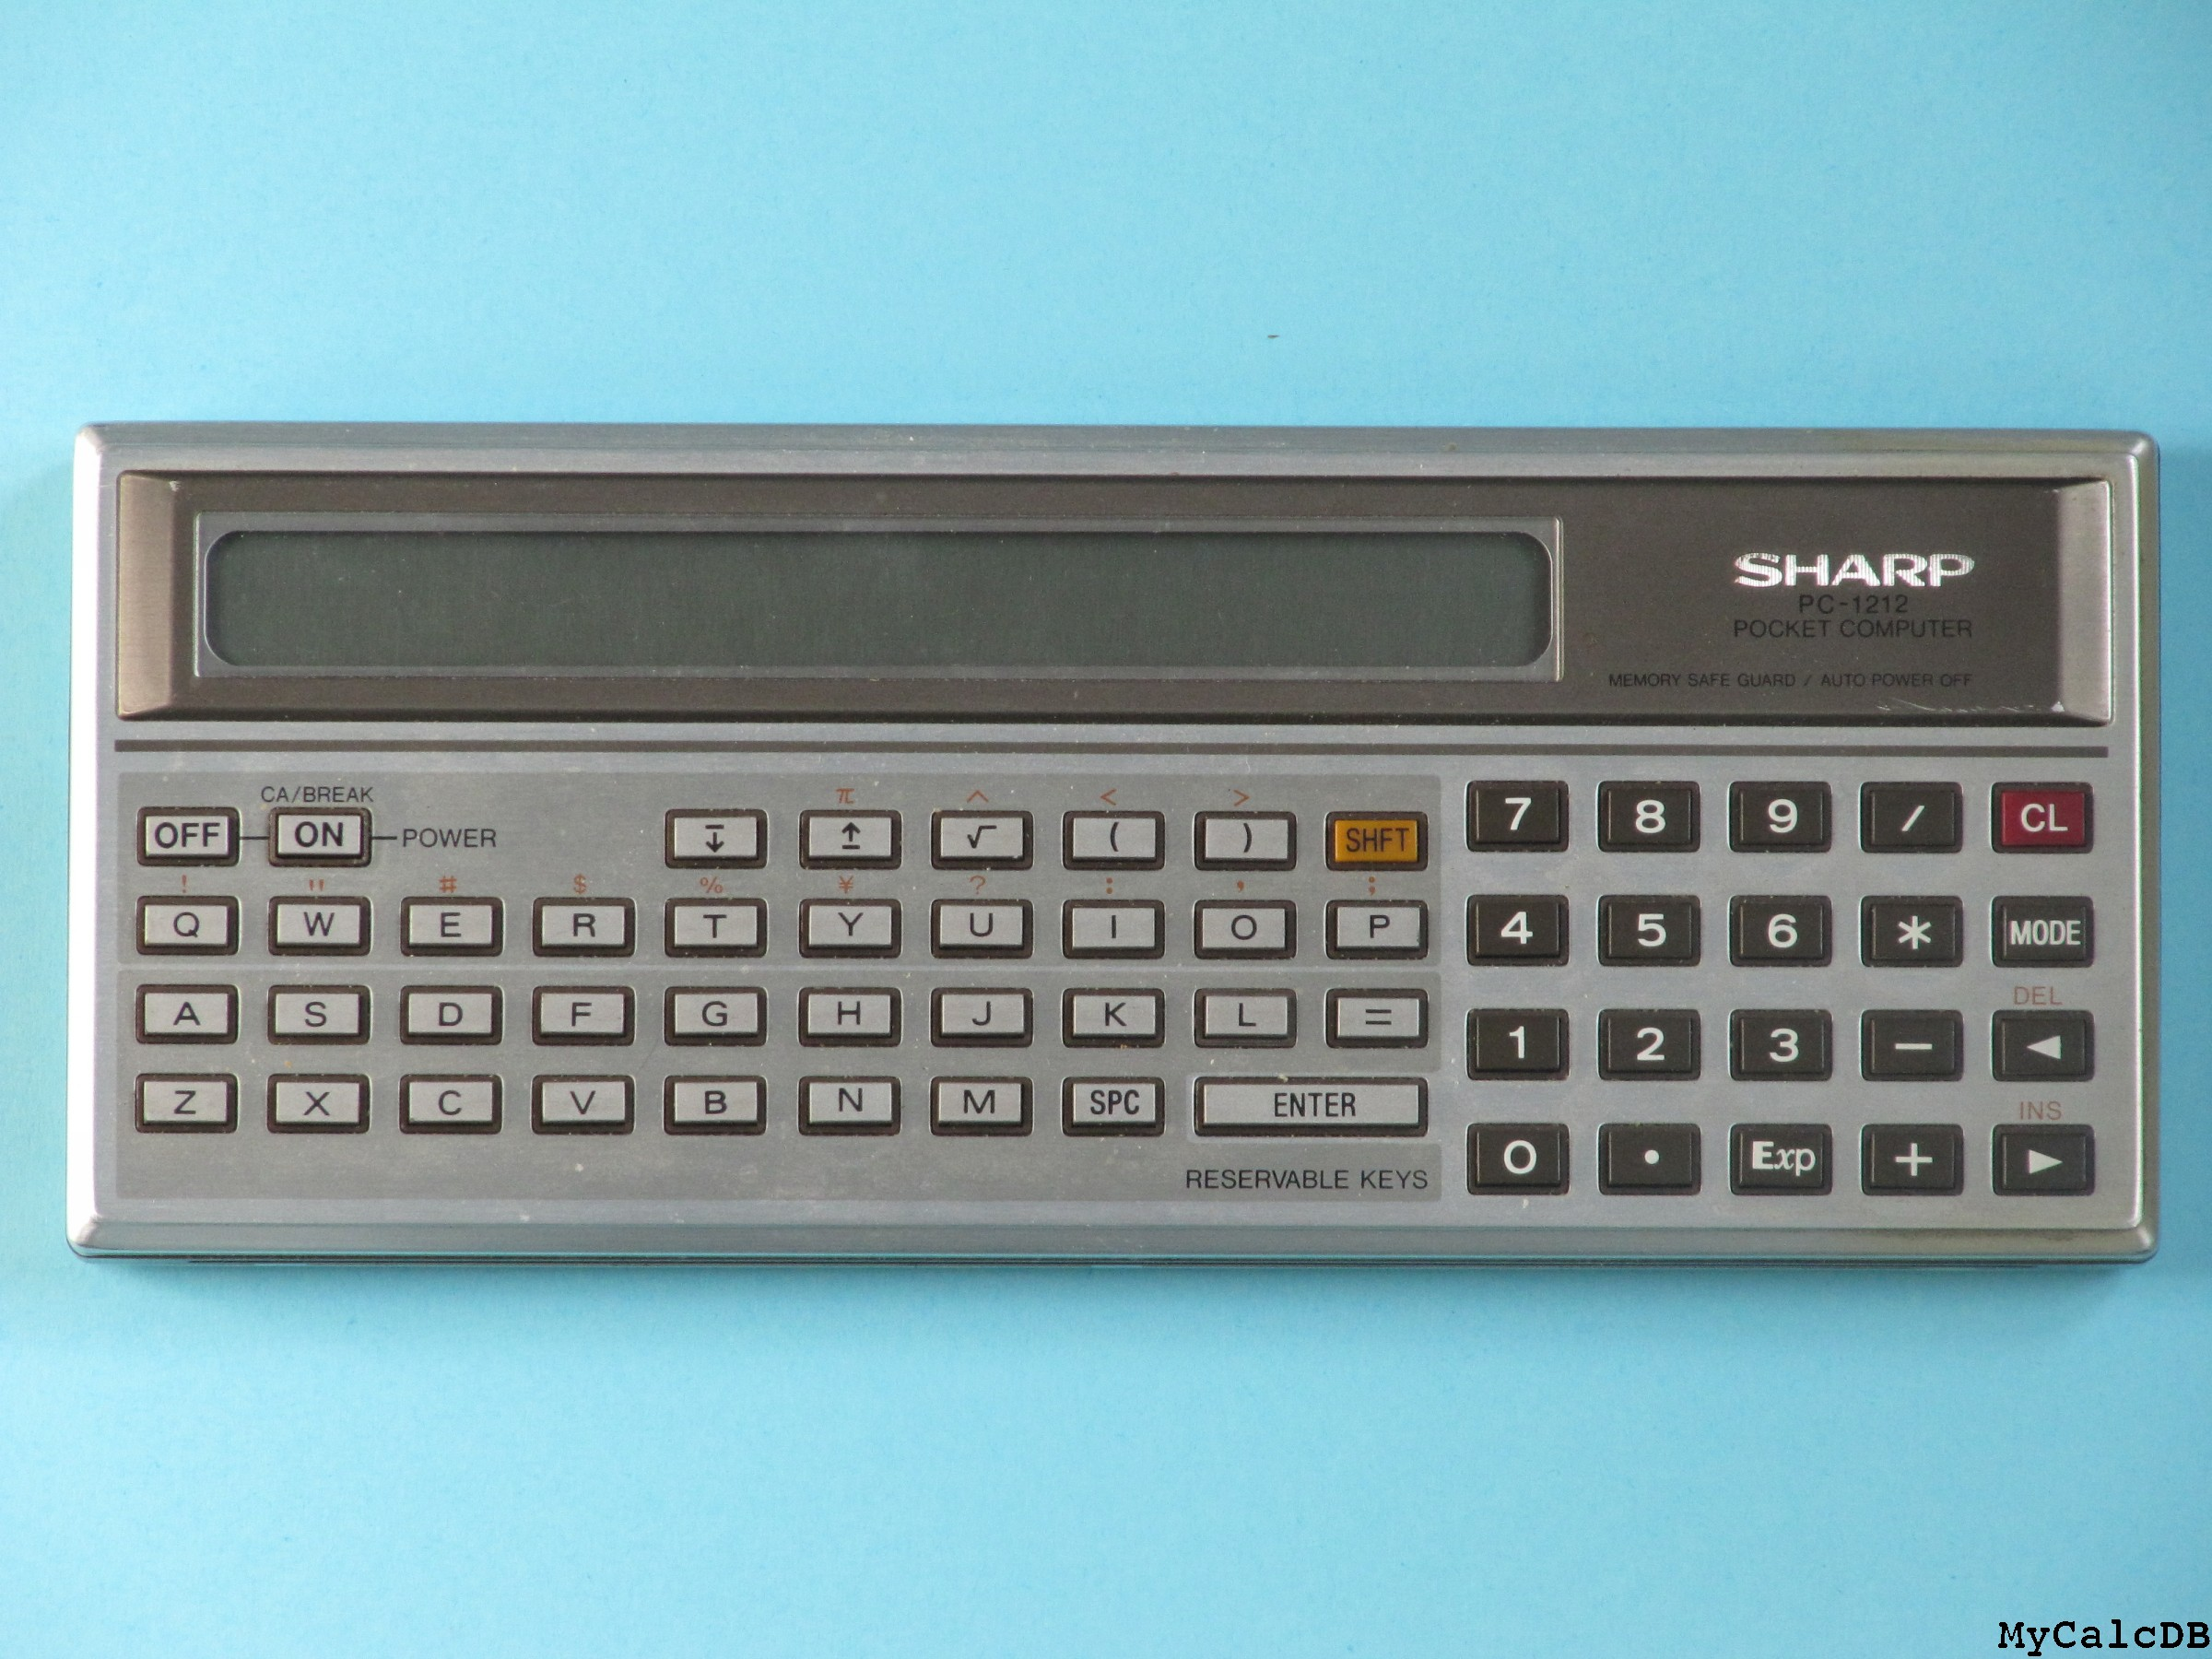 Sharp PC-1212